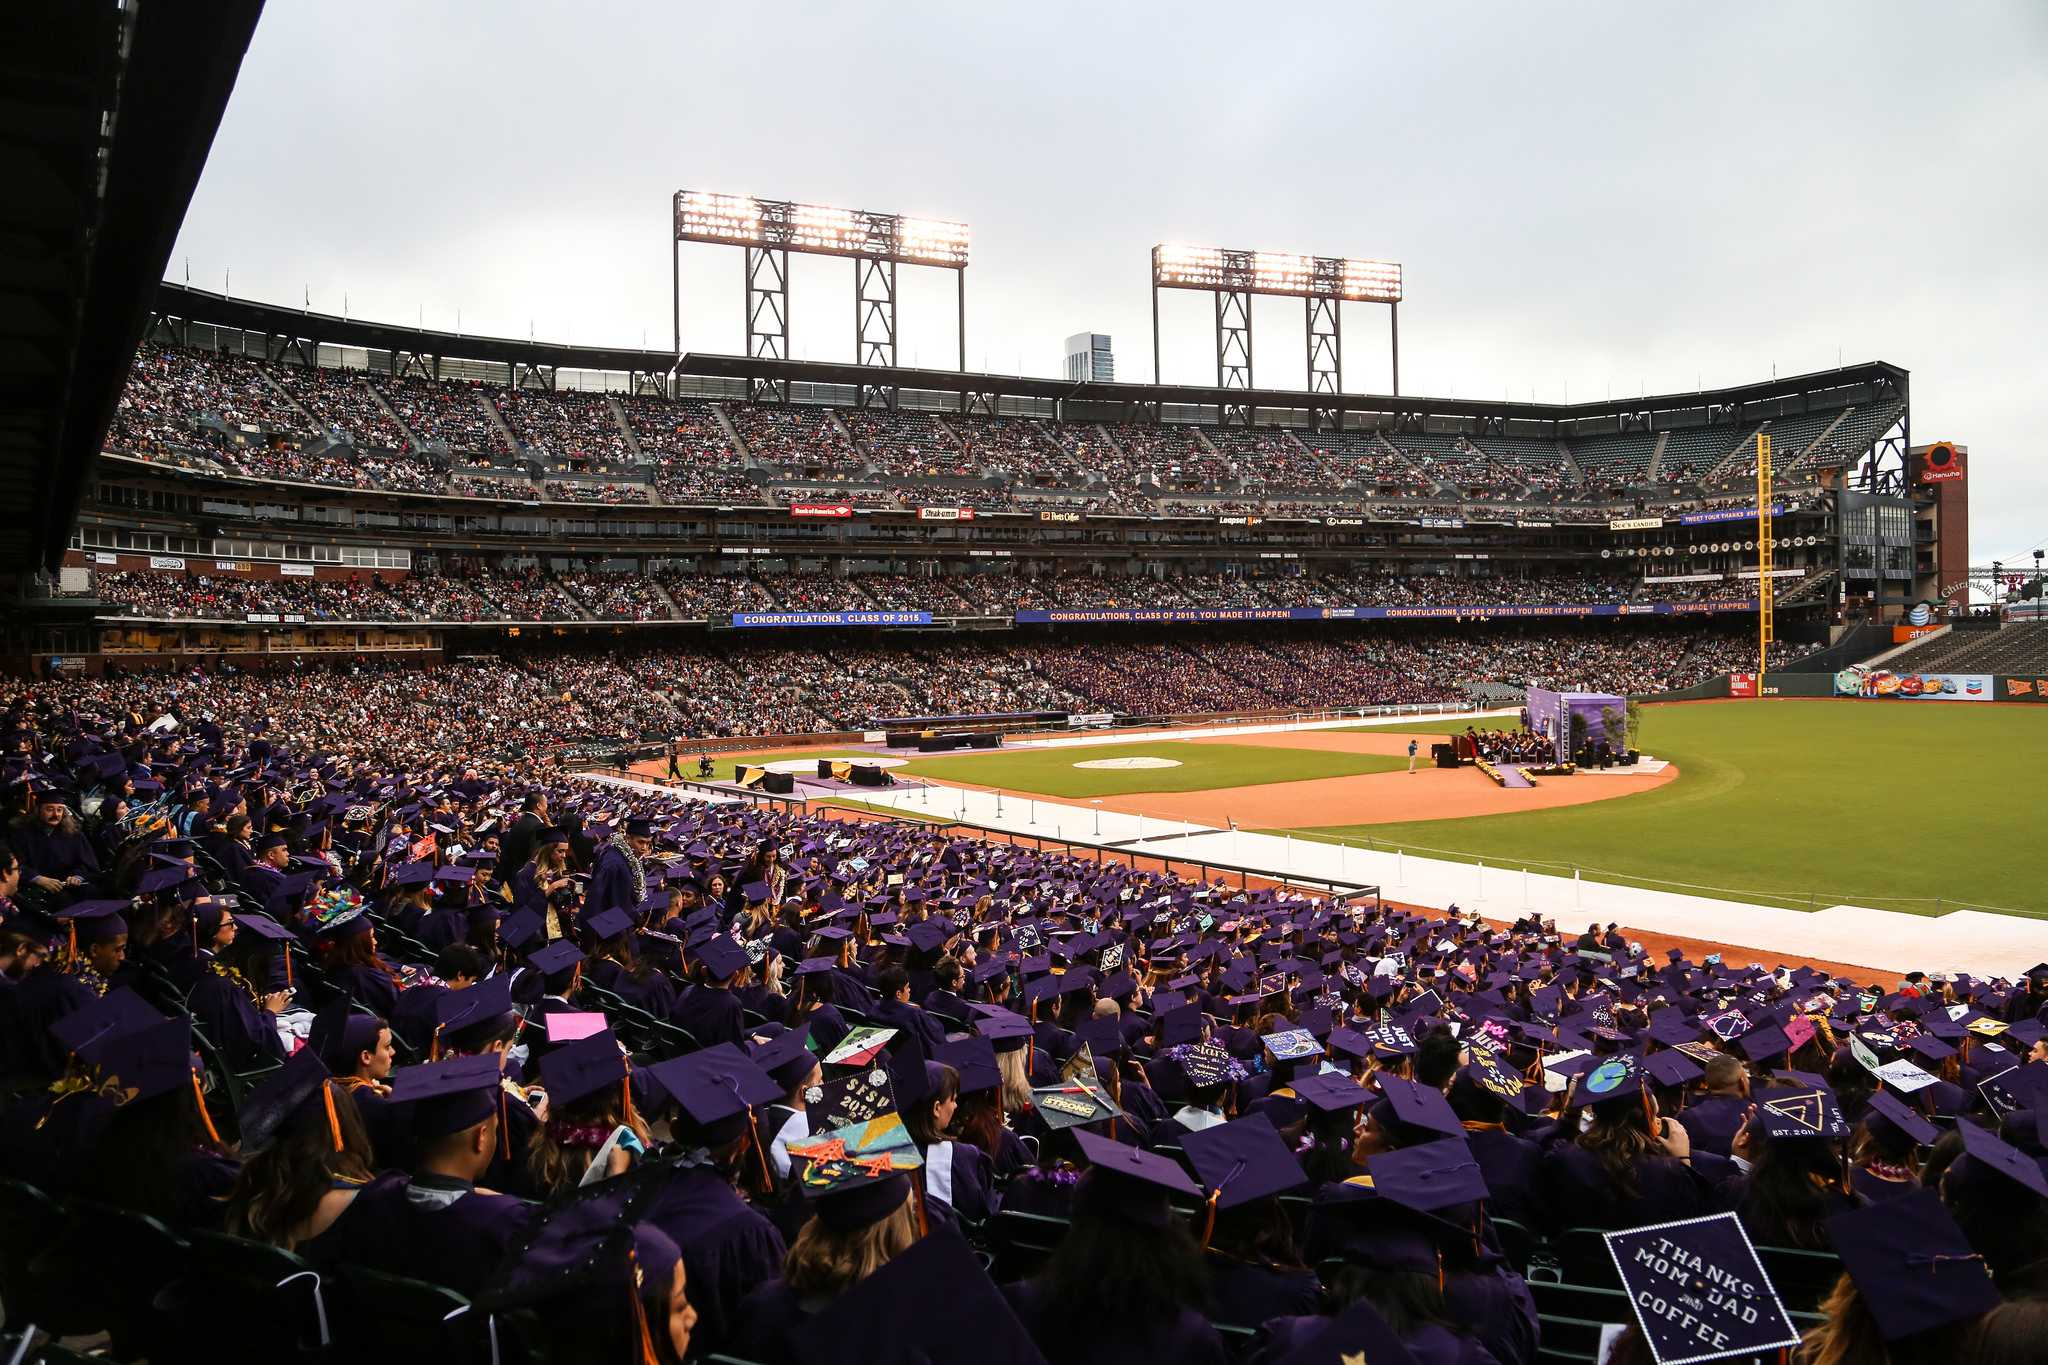 SF State's 114th Commencement Ceremony at AT&T Park